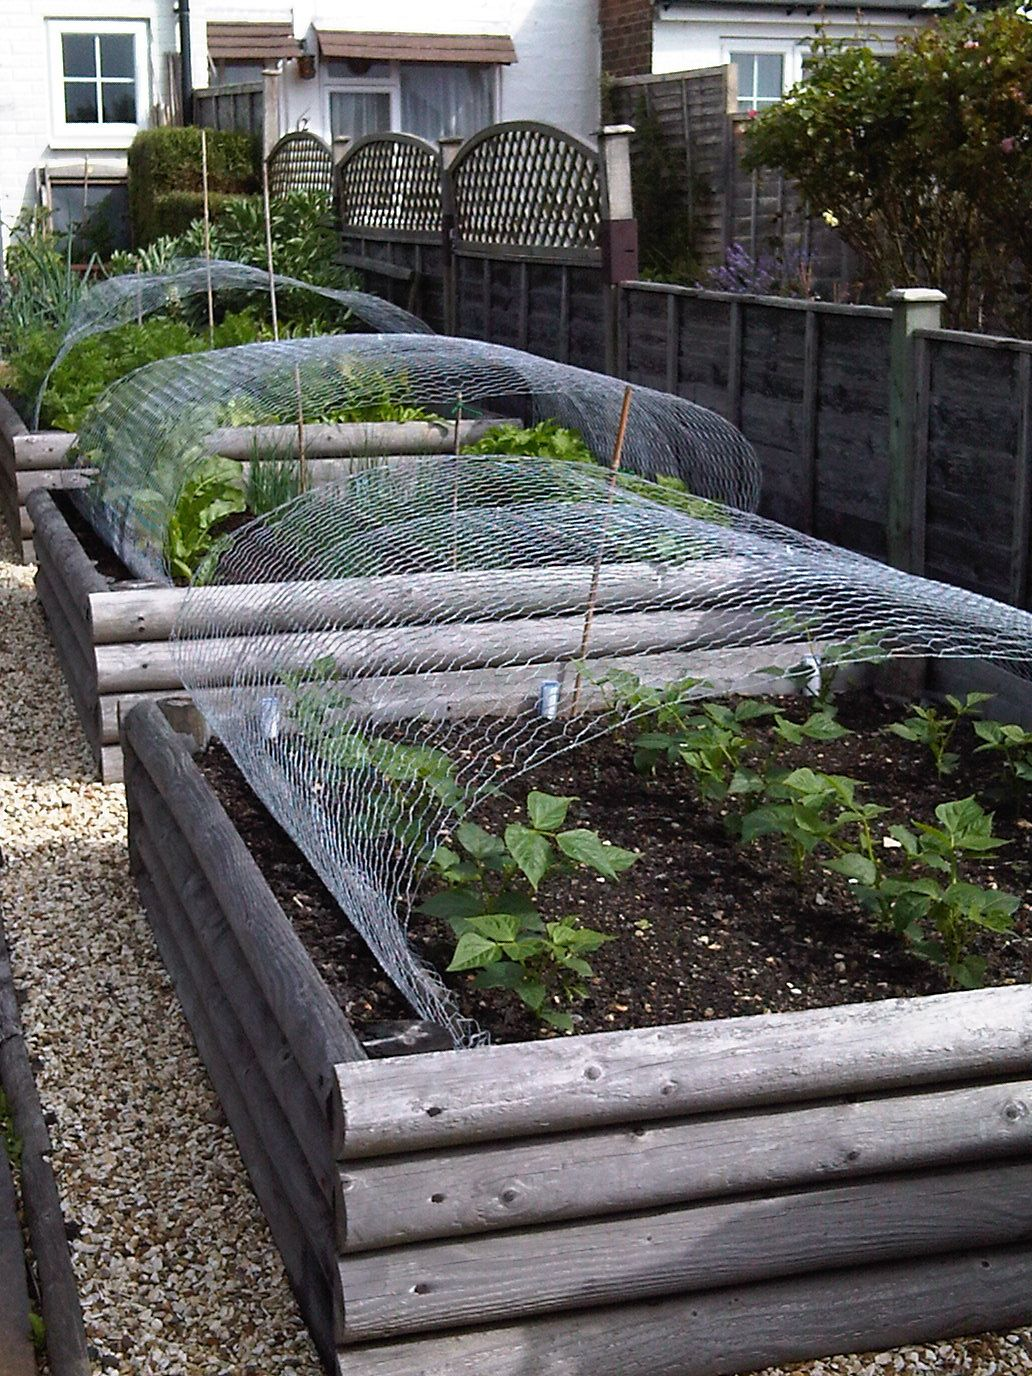 Raised vegetable beds (With images) | Raised vegetable ...